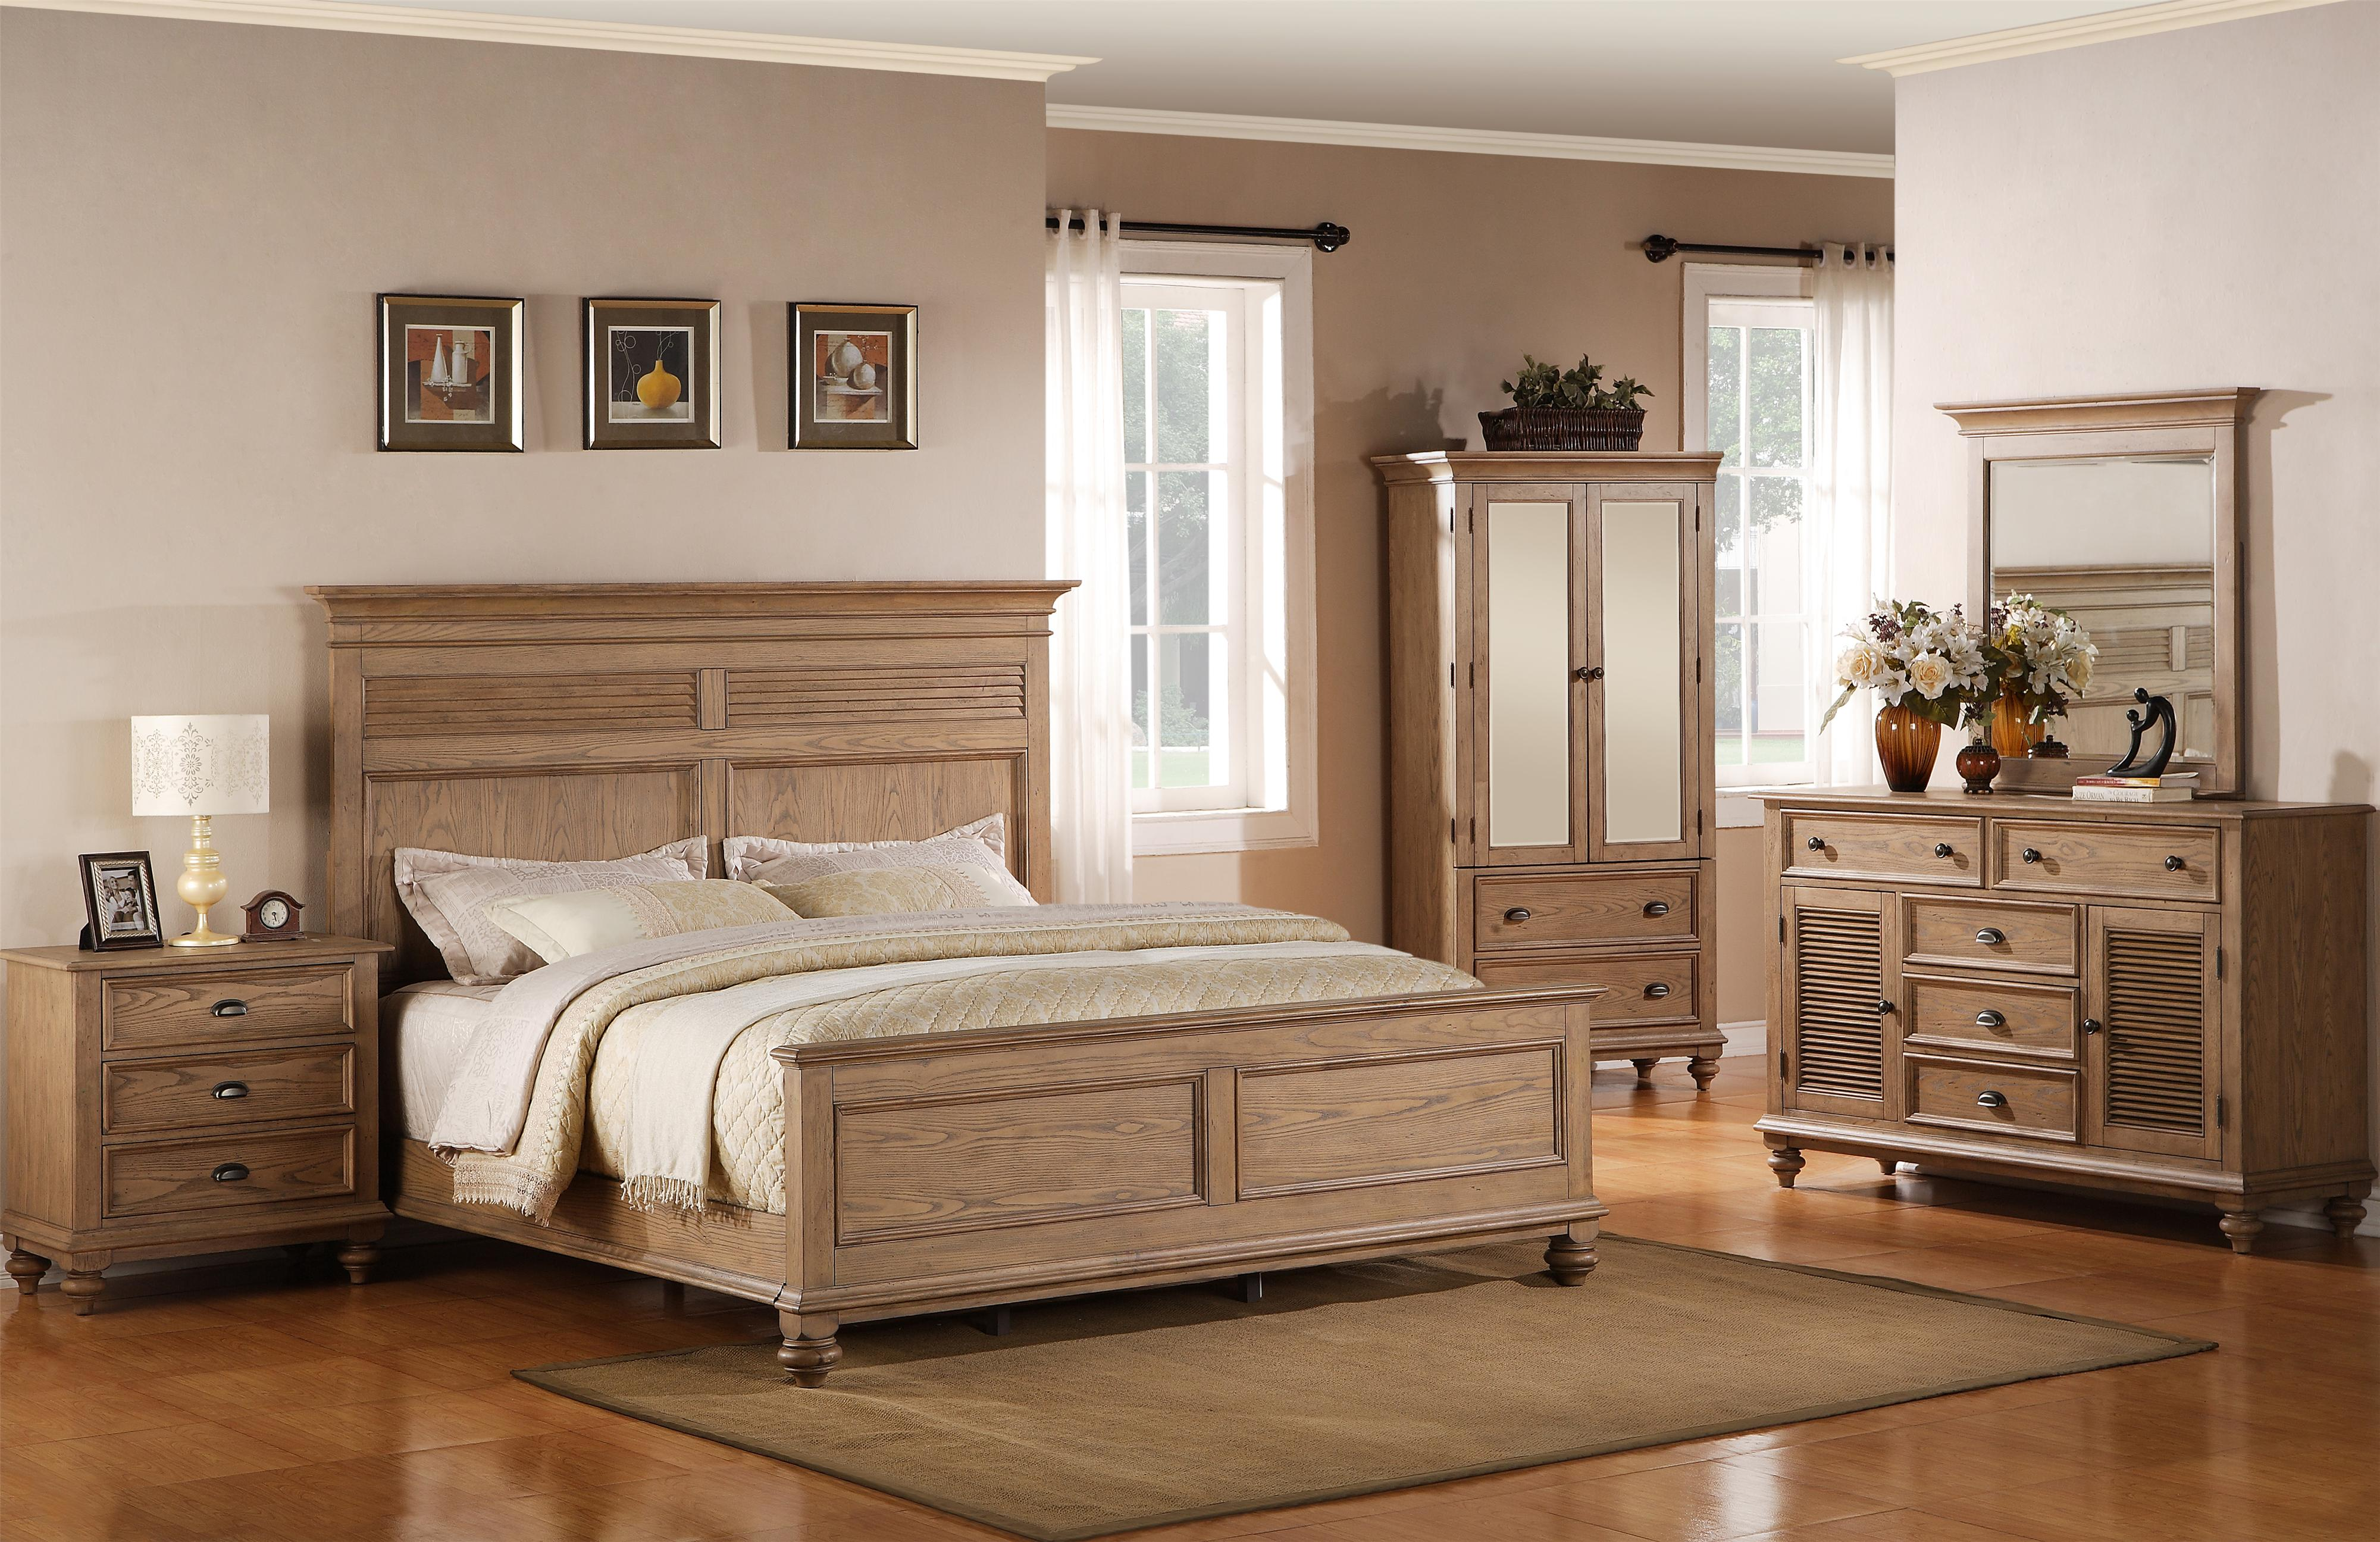 product archives bedroom drawer nightstand family stores harris furniture category sets riverside belmeade bedrooms room